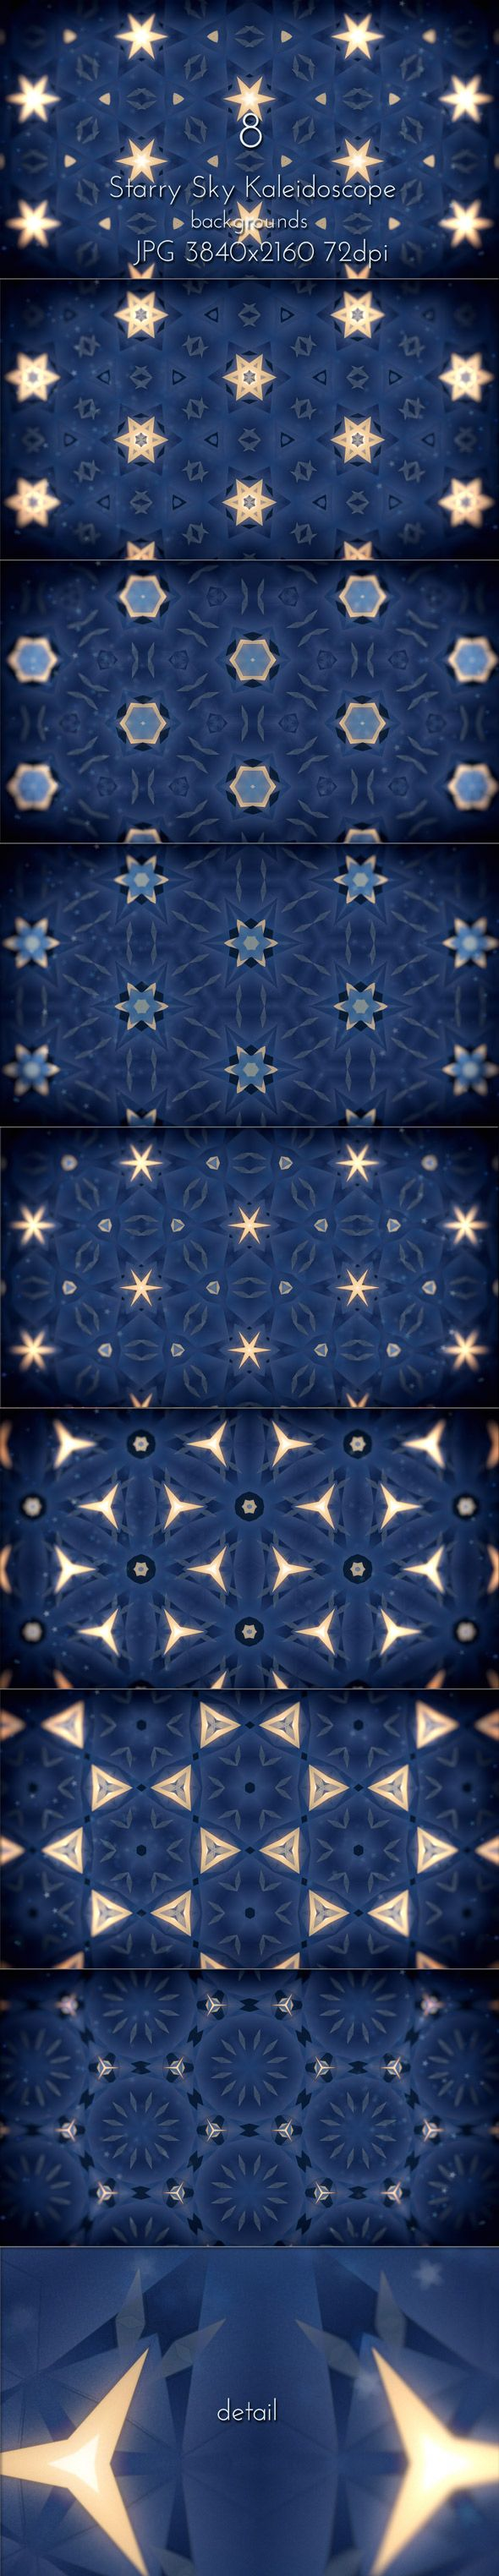 Starry Sky Kaleidoscope Patterns UltraHD Backgrounds by cinema4design. Wallpapers collection.  8 JPG images, 3840×2160 (16:9 format), 72 DPI.